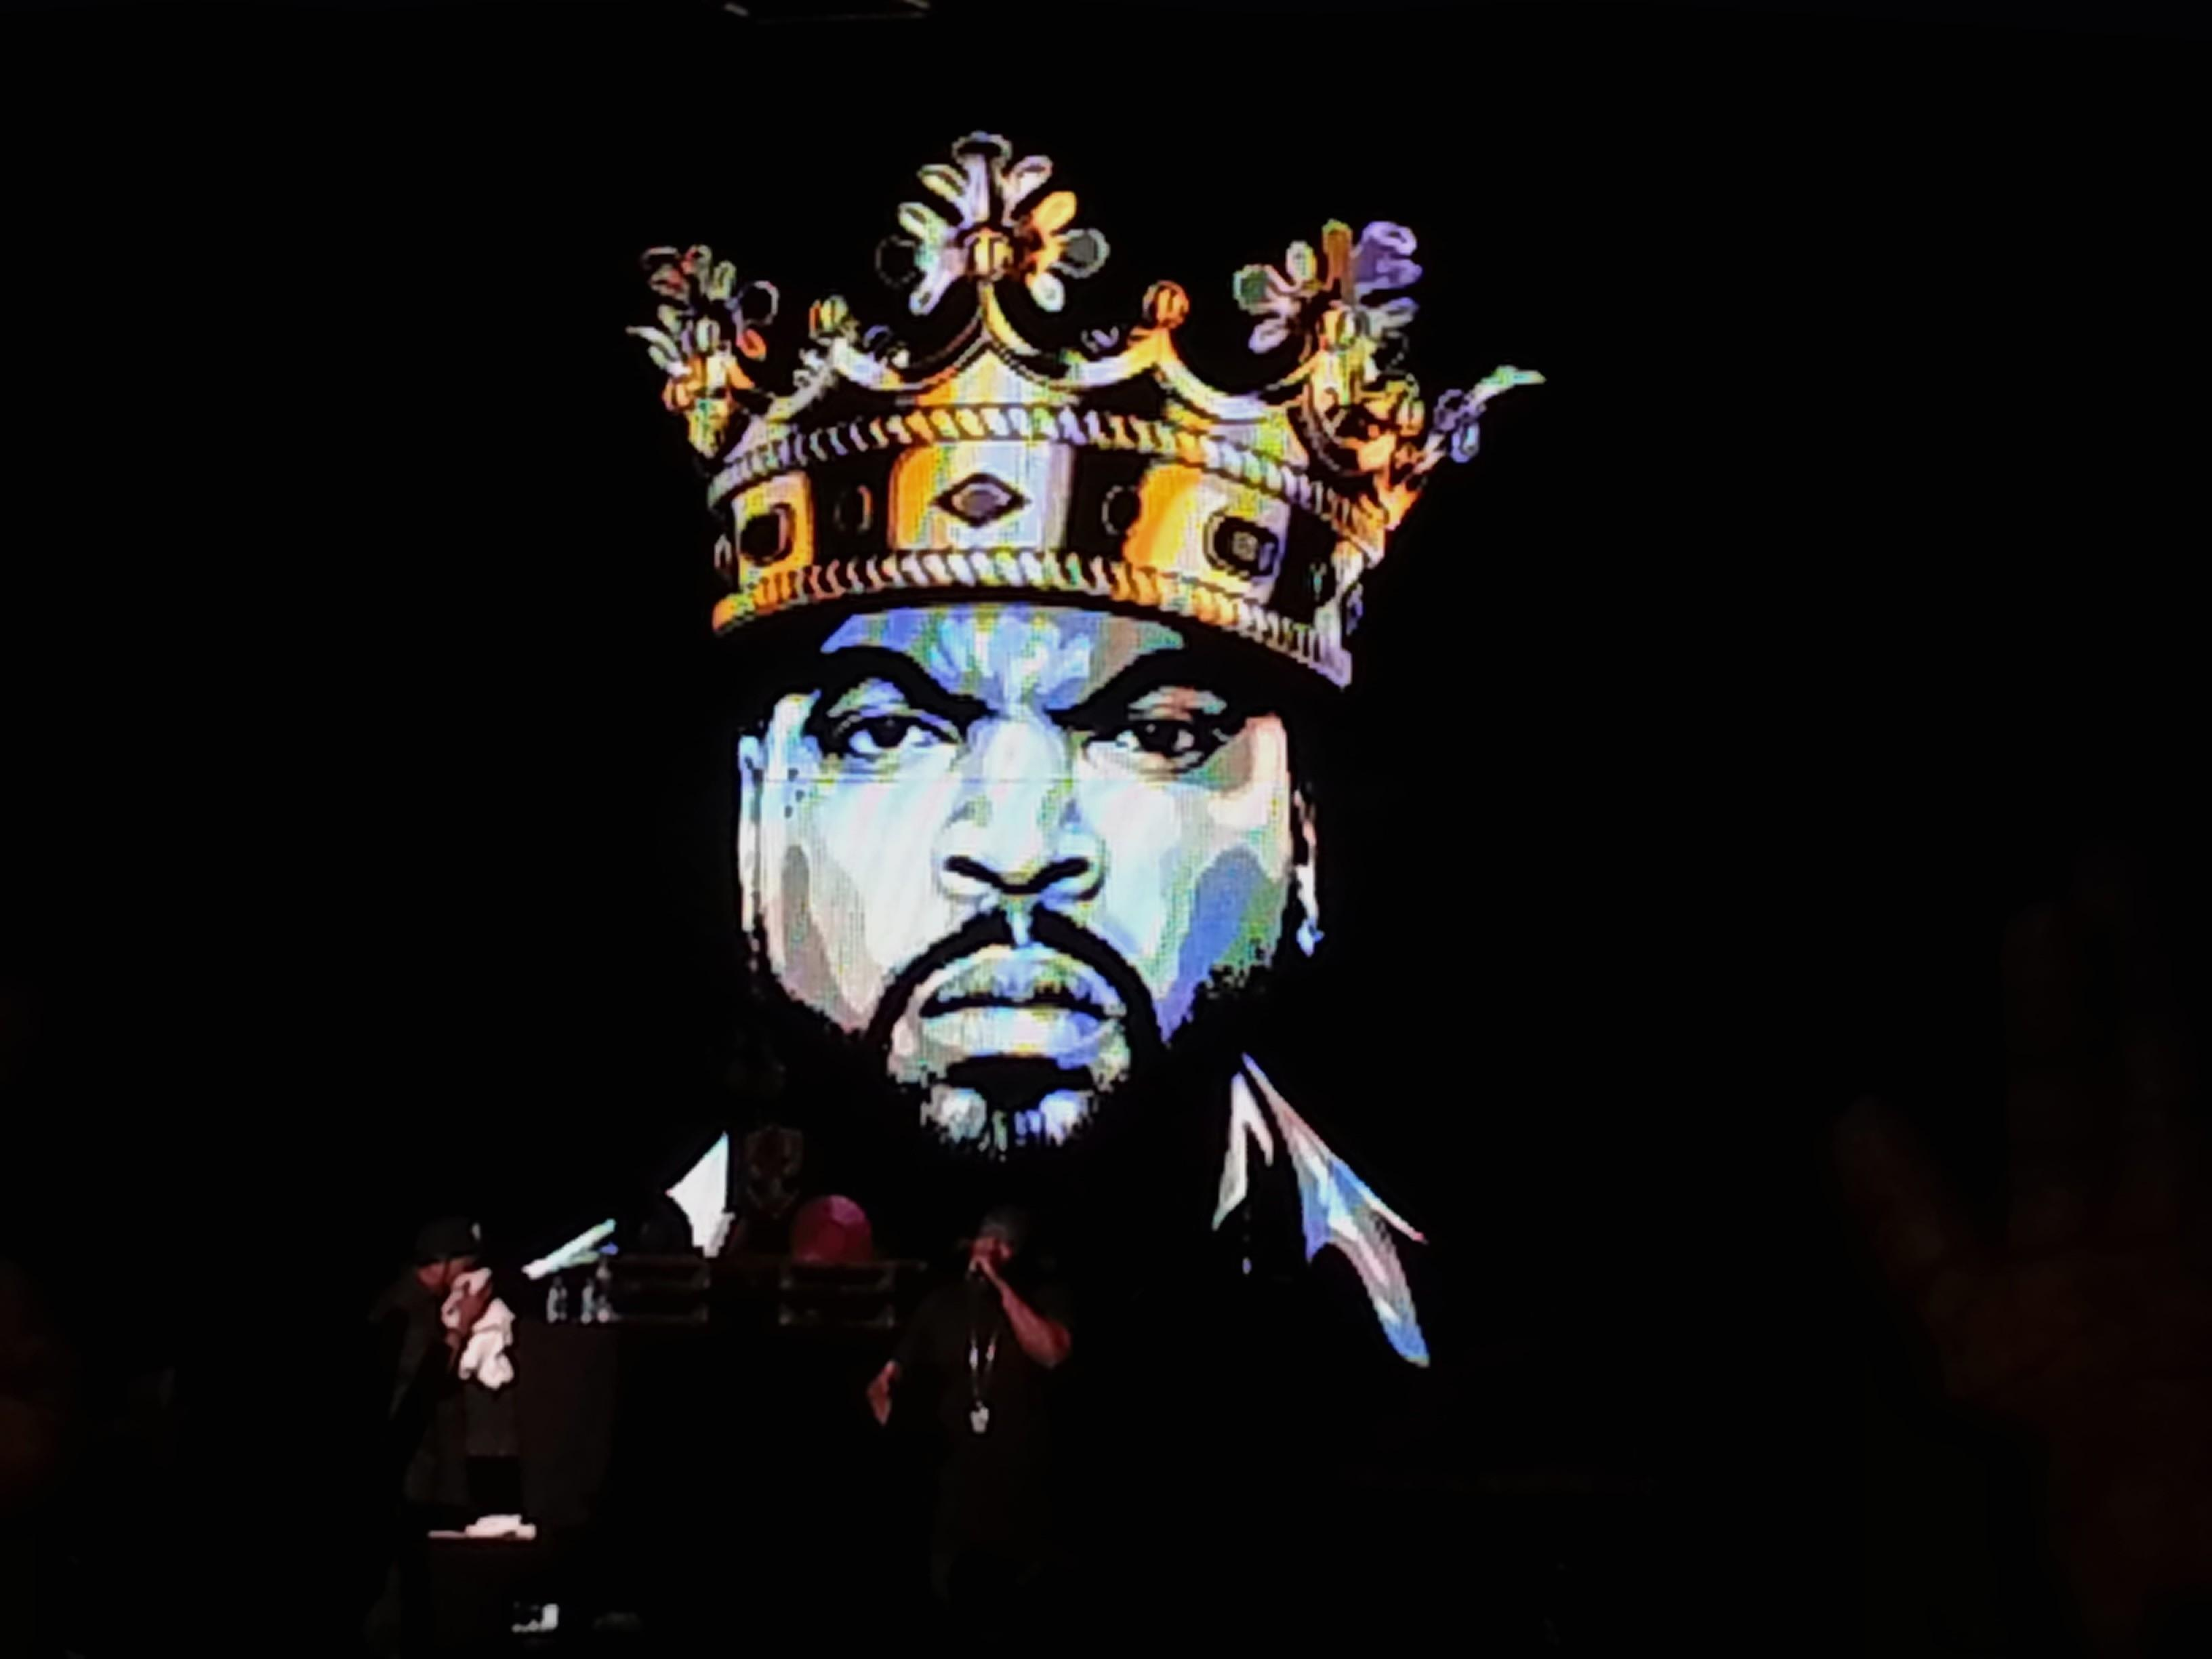 Ice Cube Wallpapers HD Download 3264x2448